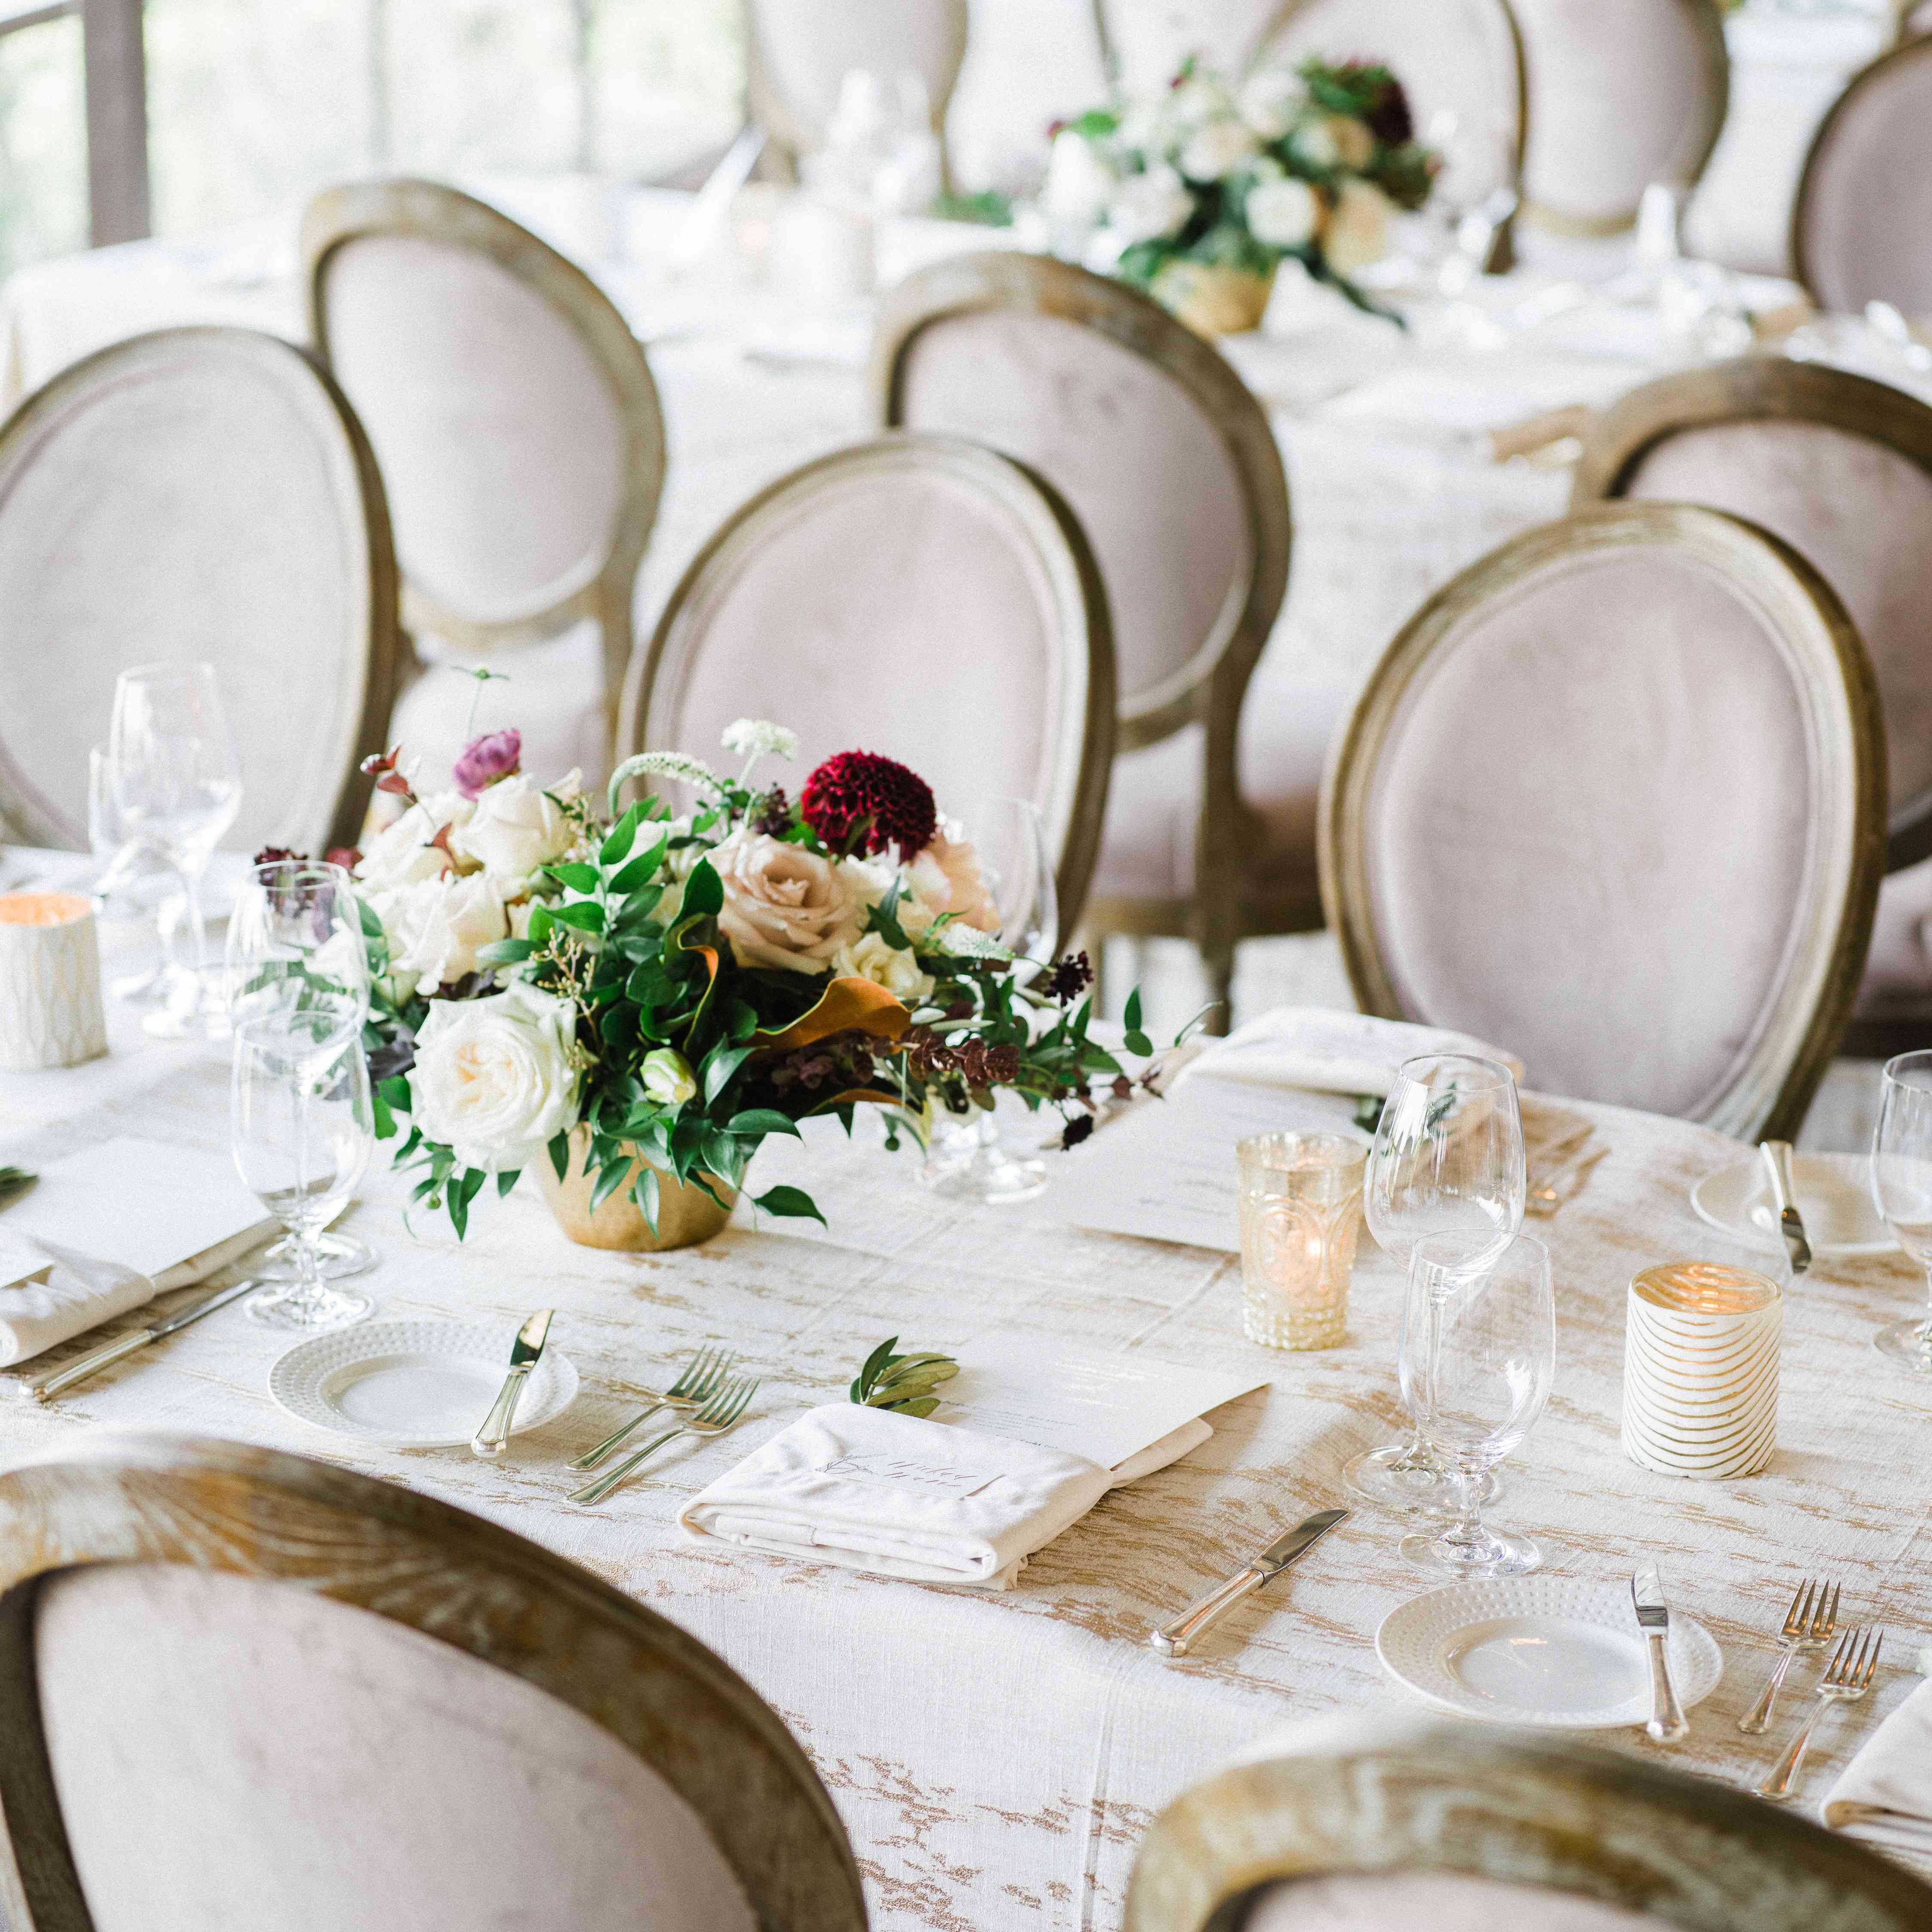 <p>Table setting at reception</p><br><br>